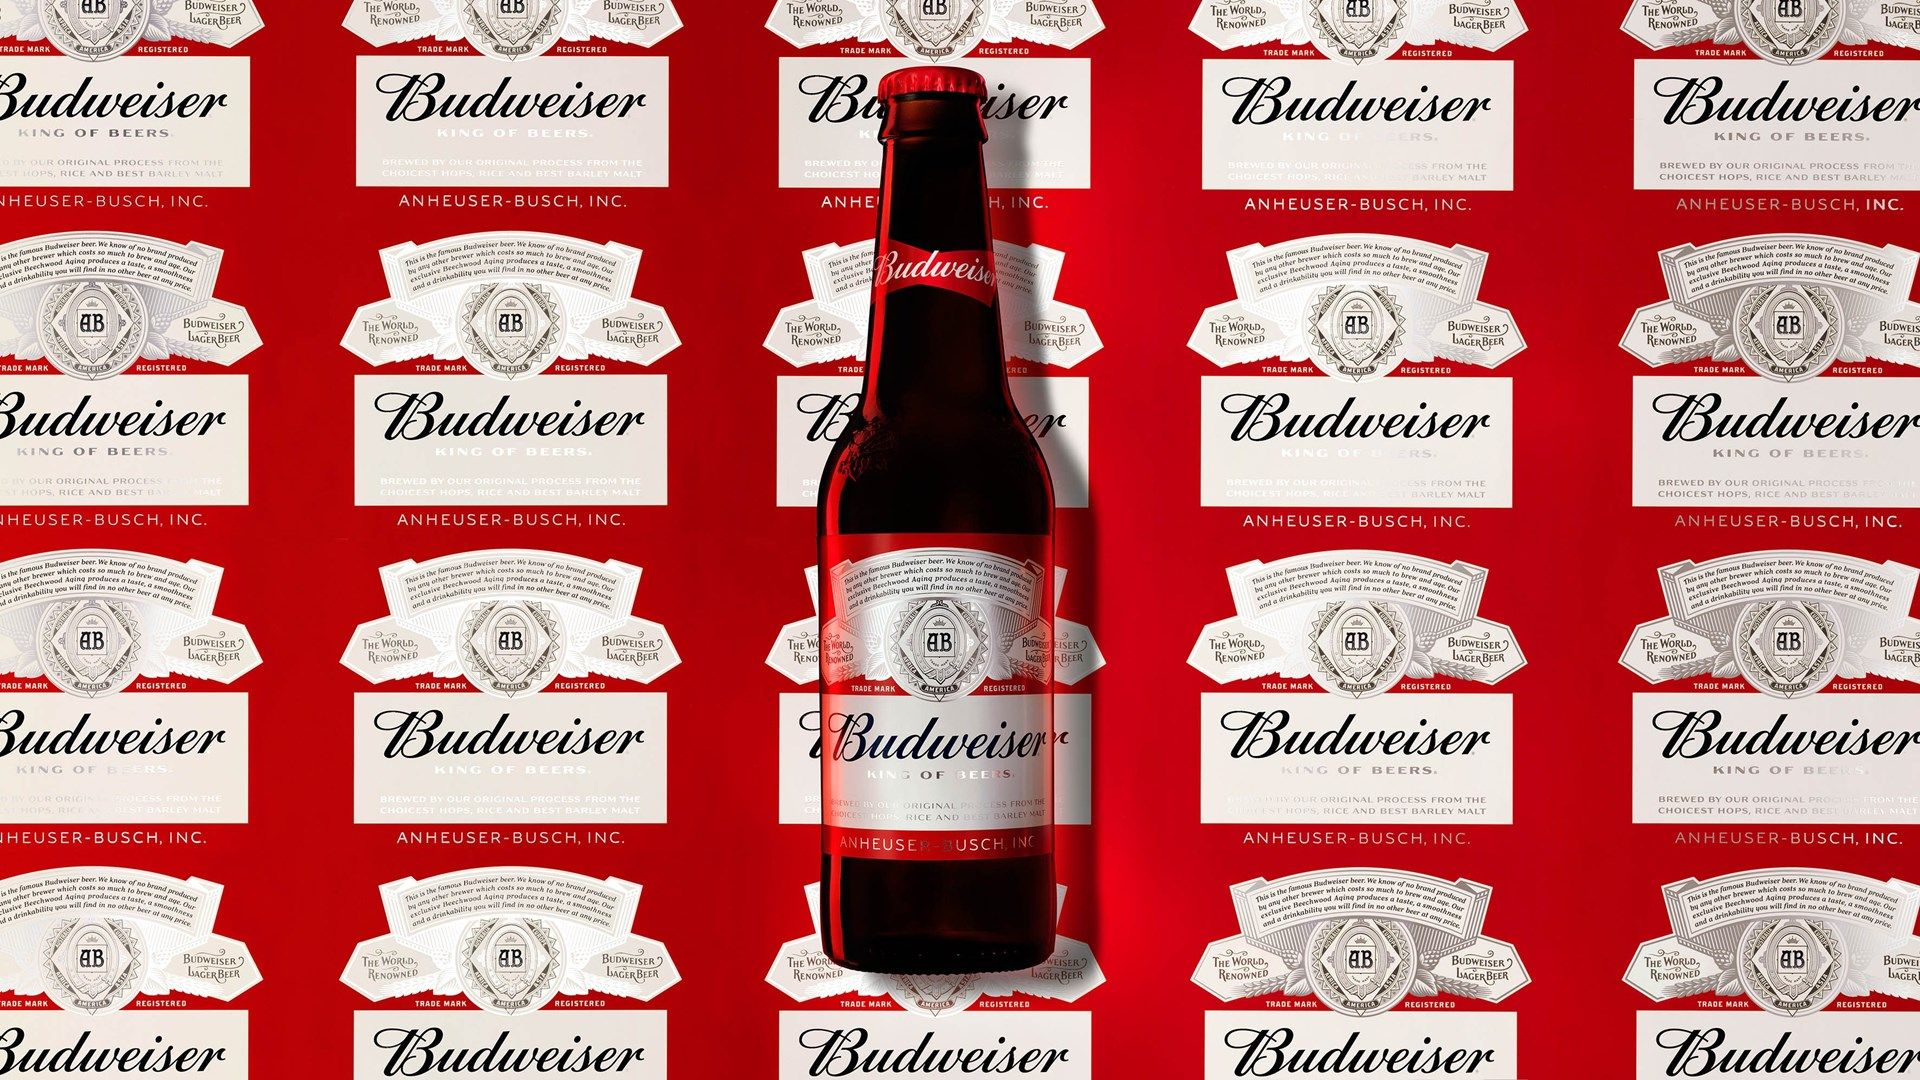 JKR Global Budweiser This Bud s For You Packaging